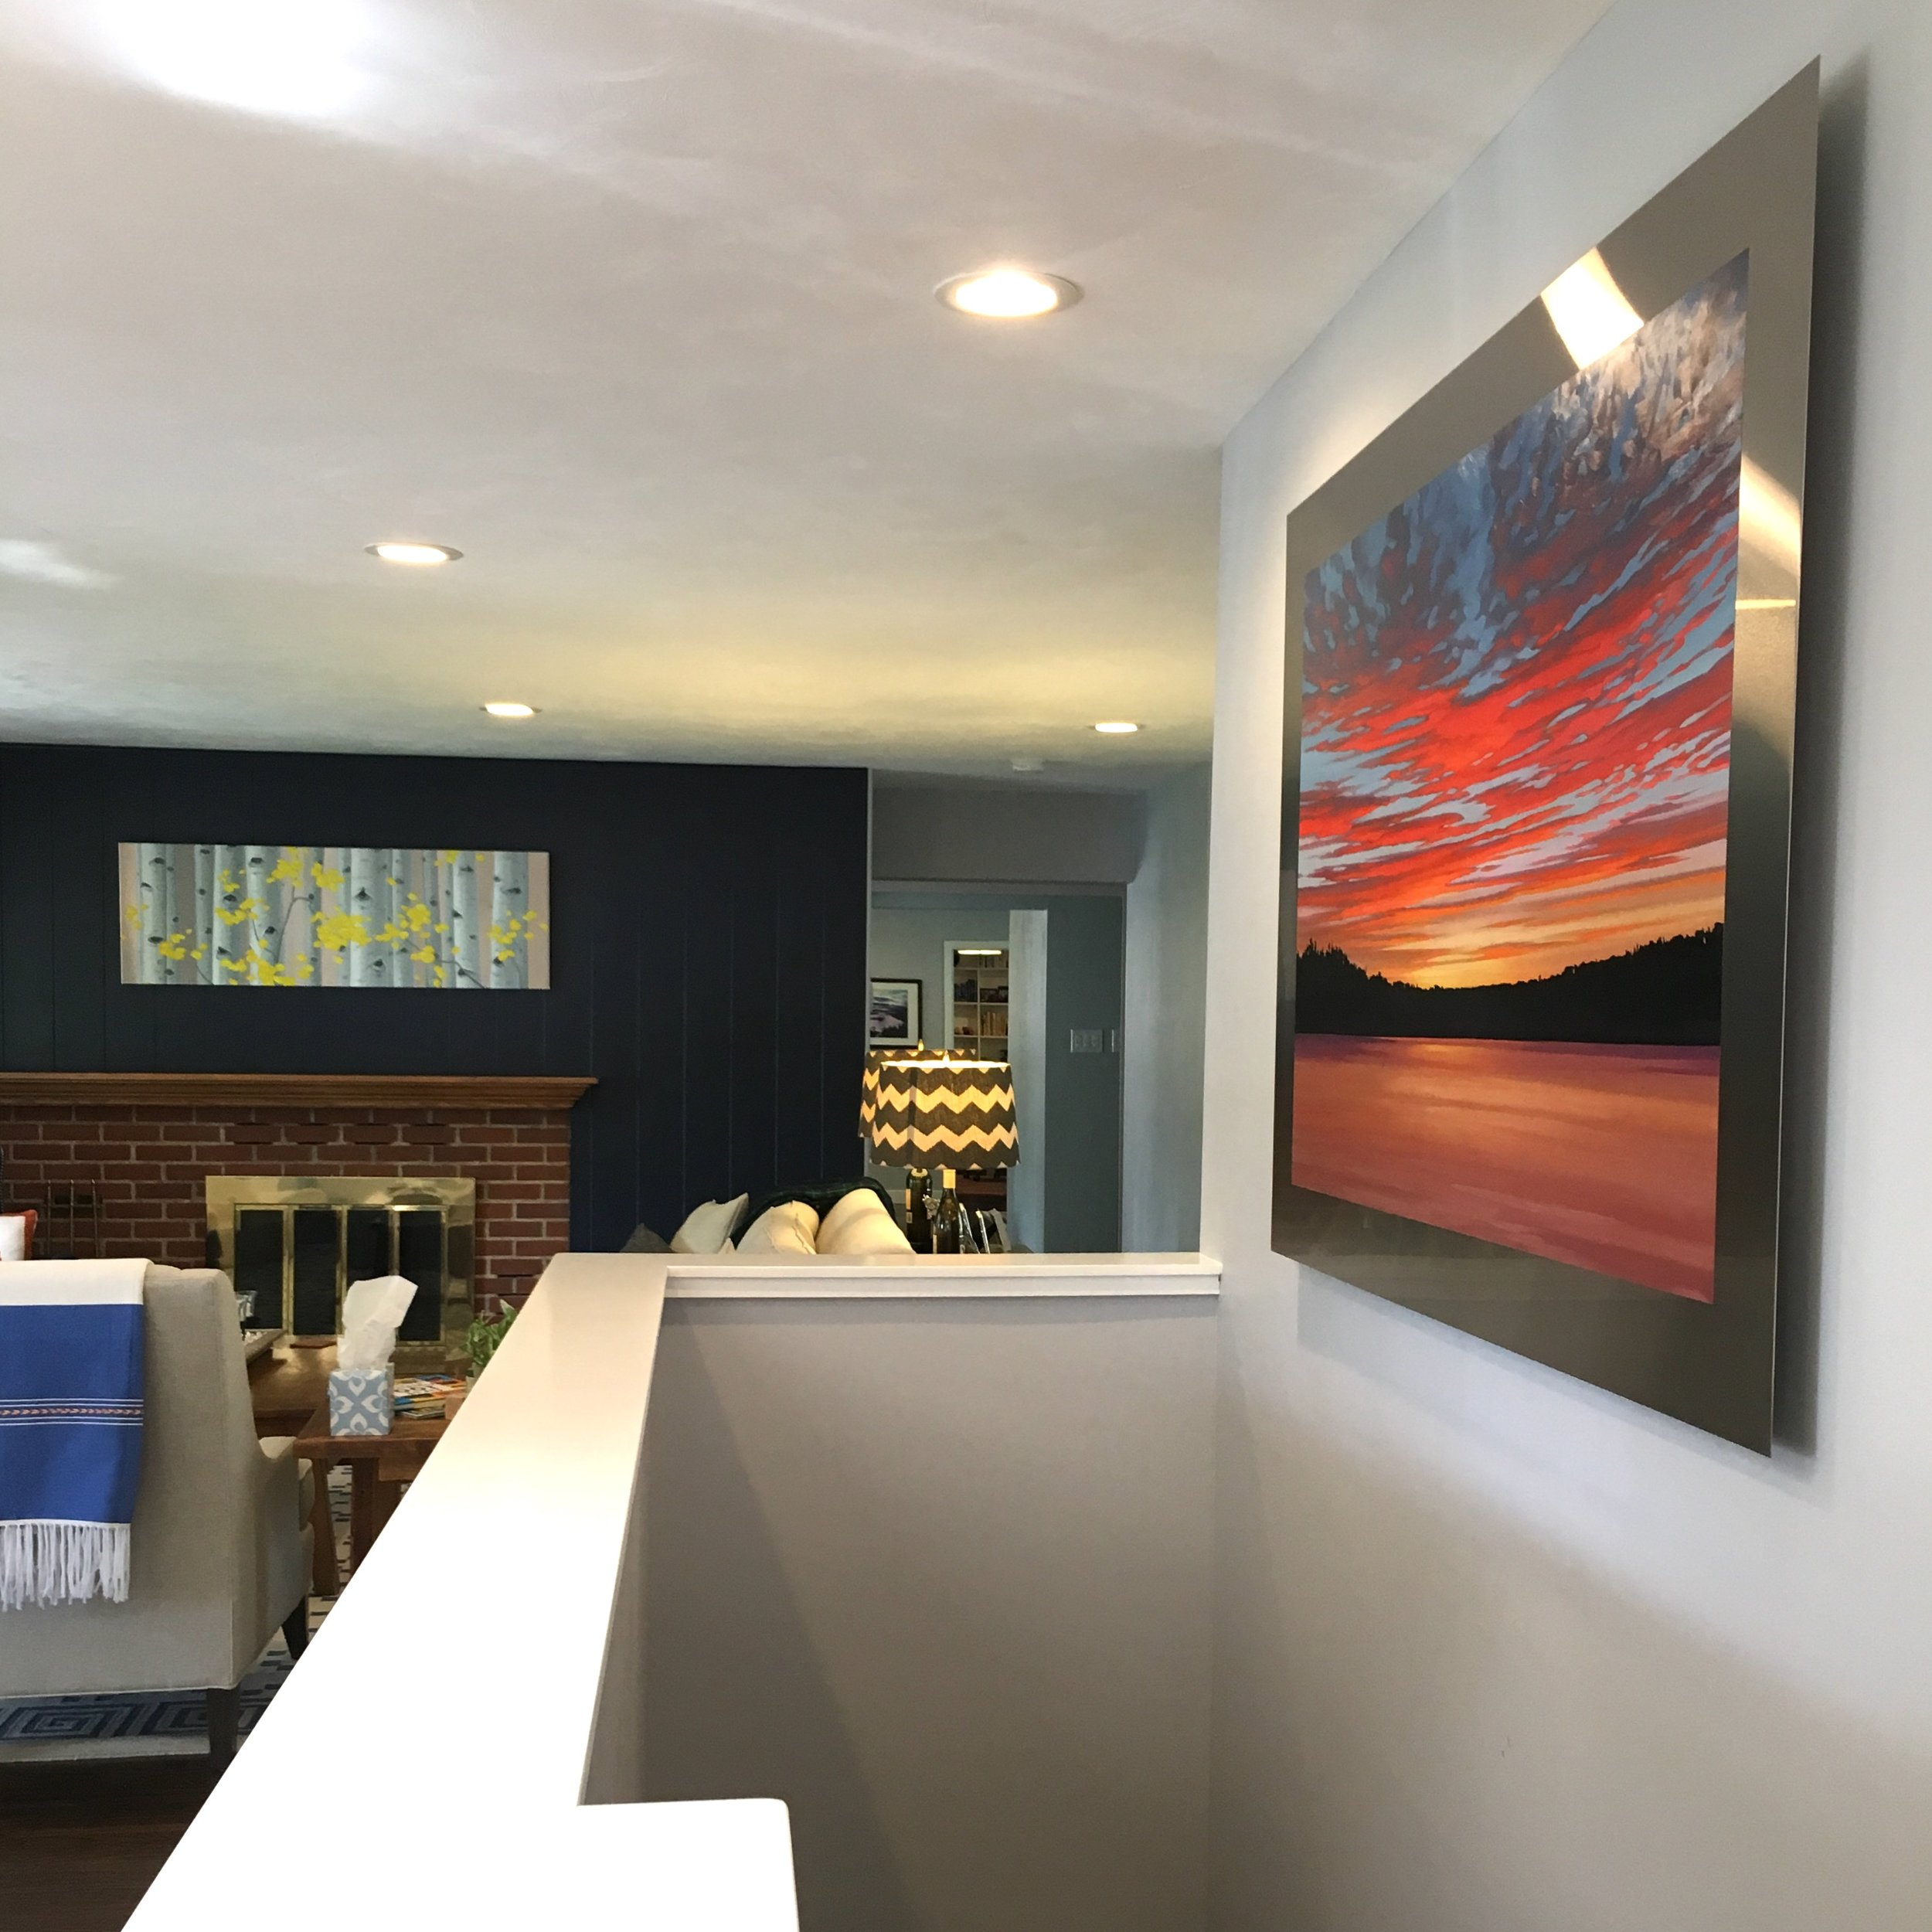 Lakescape and aspen painting installed in Denver home